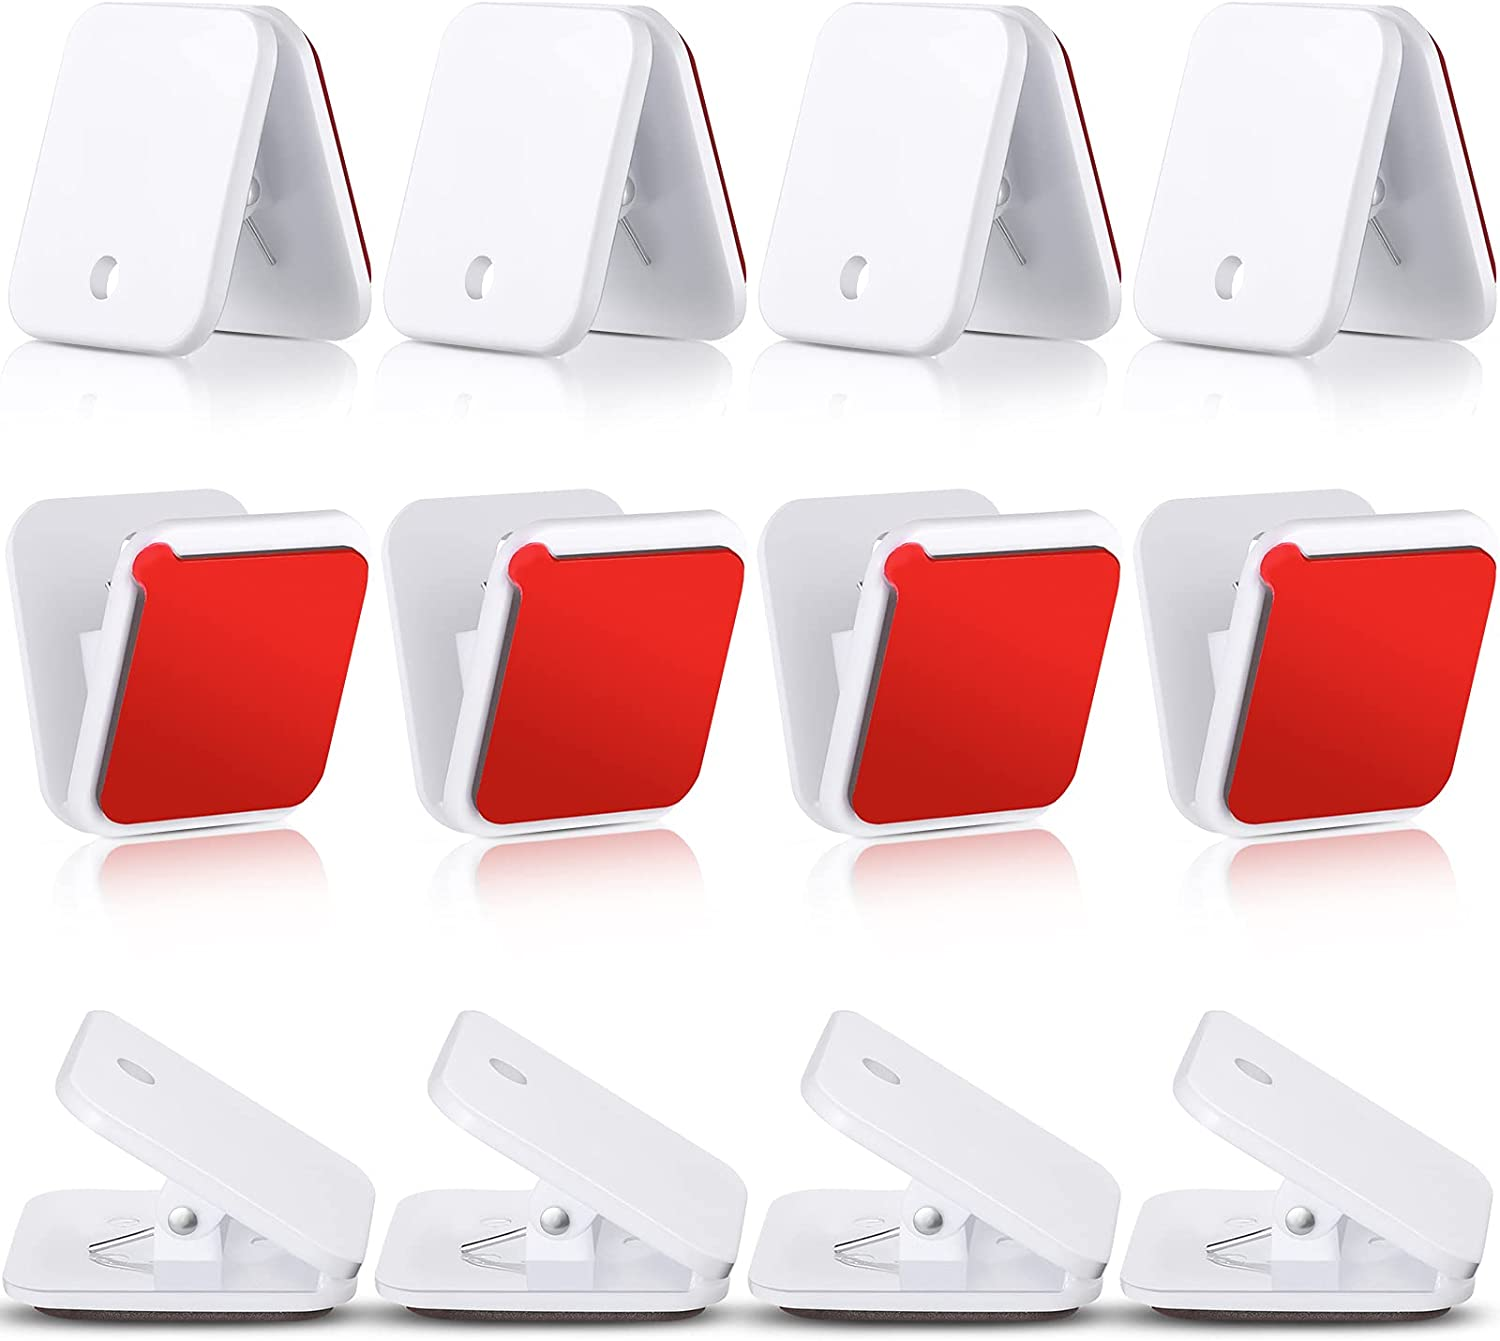 Jetec Self Adhesive Clips, Wall Clips, Shower Curtain Clips, Photo Clips for Paper Flag Hanger Double-Sided Adhesive Spring Clips for Teachers, Poster and Home Office Rope (12, White)